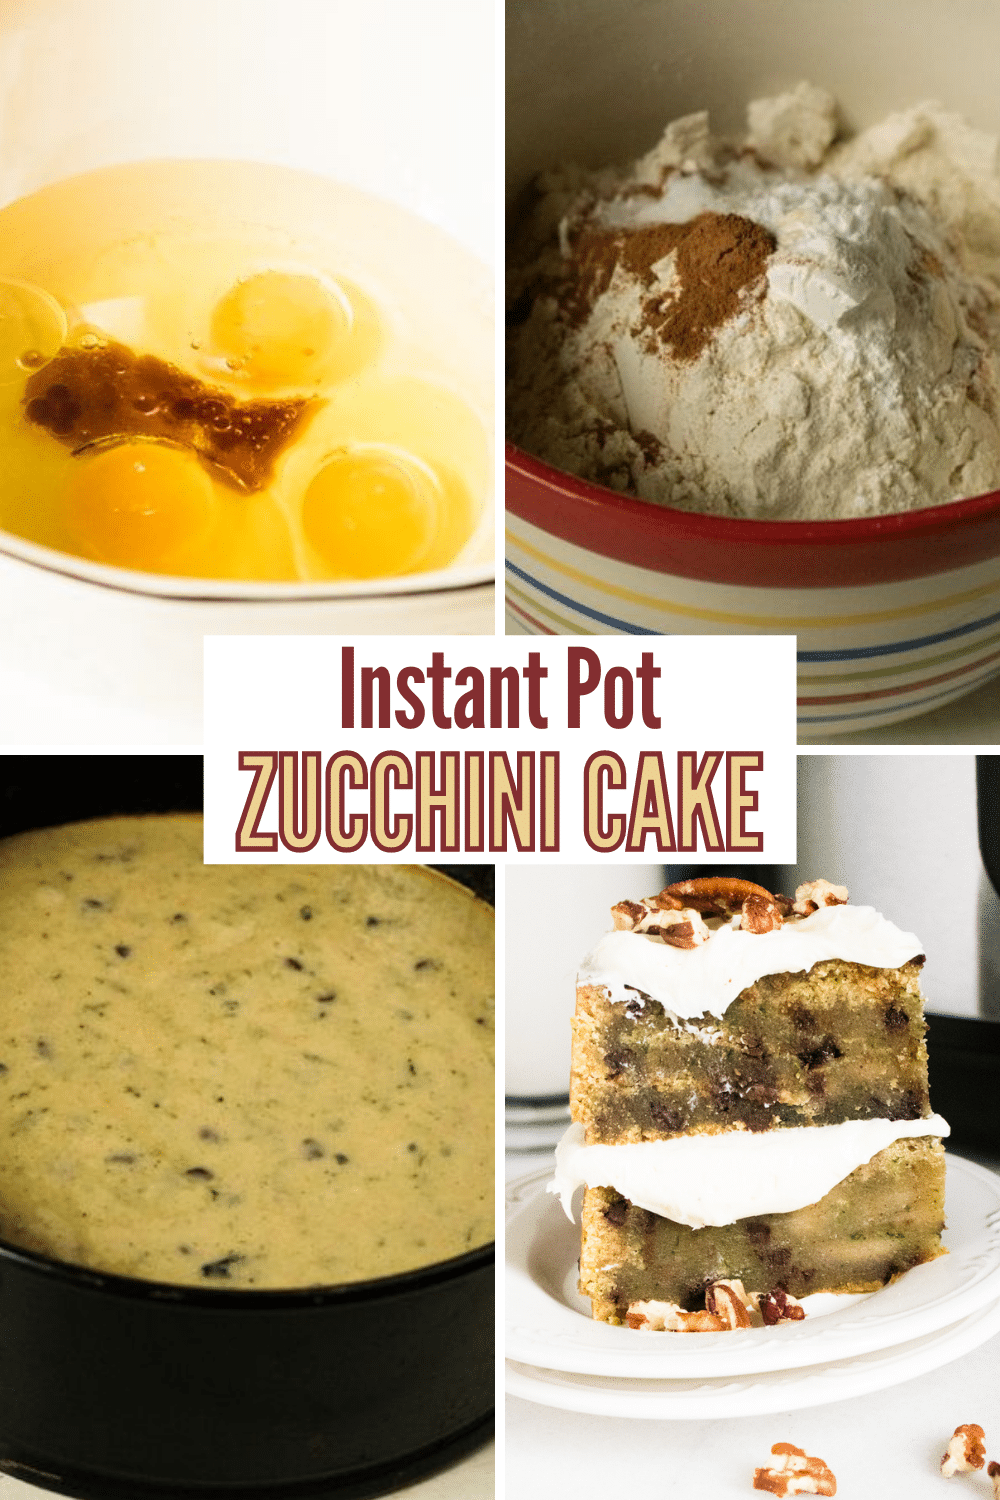 Instant Pot Zucchini Bread is the best zucchini bread I've ever tried. This bread is soft, and full of sweet cinnamon and zucchini flavor. #instantpot #pressurecooker #zucchinibread #recipe via @wondermomwannab